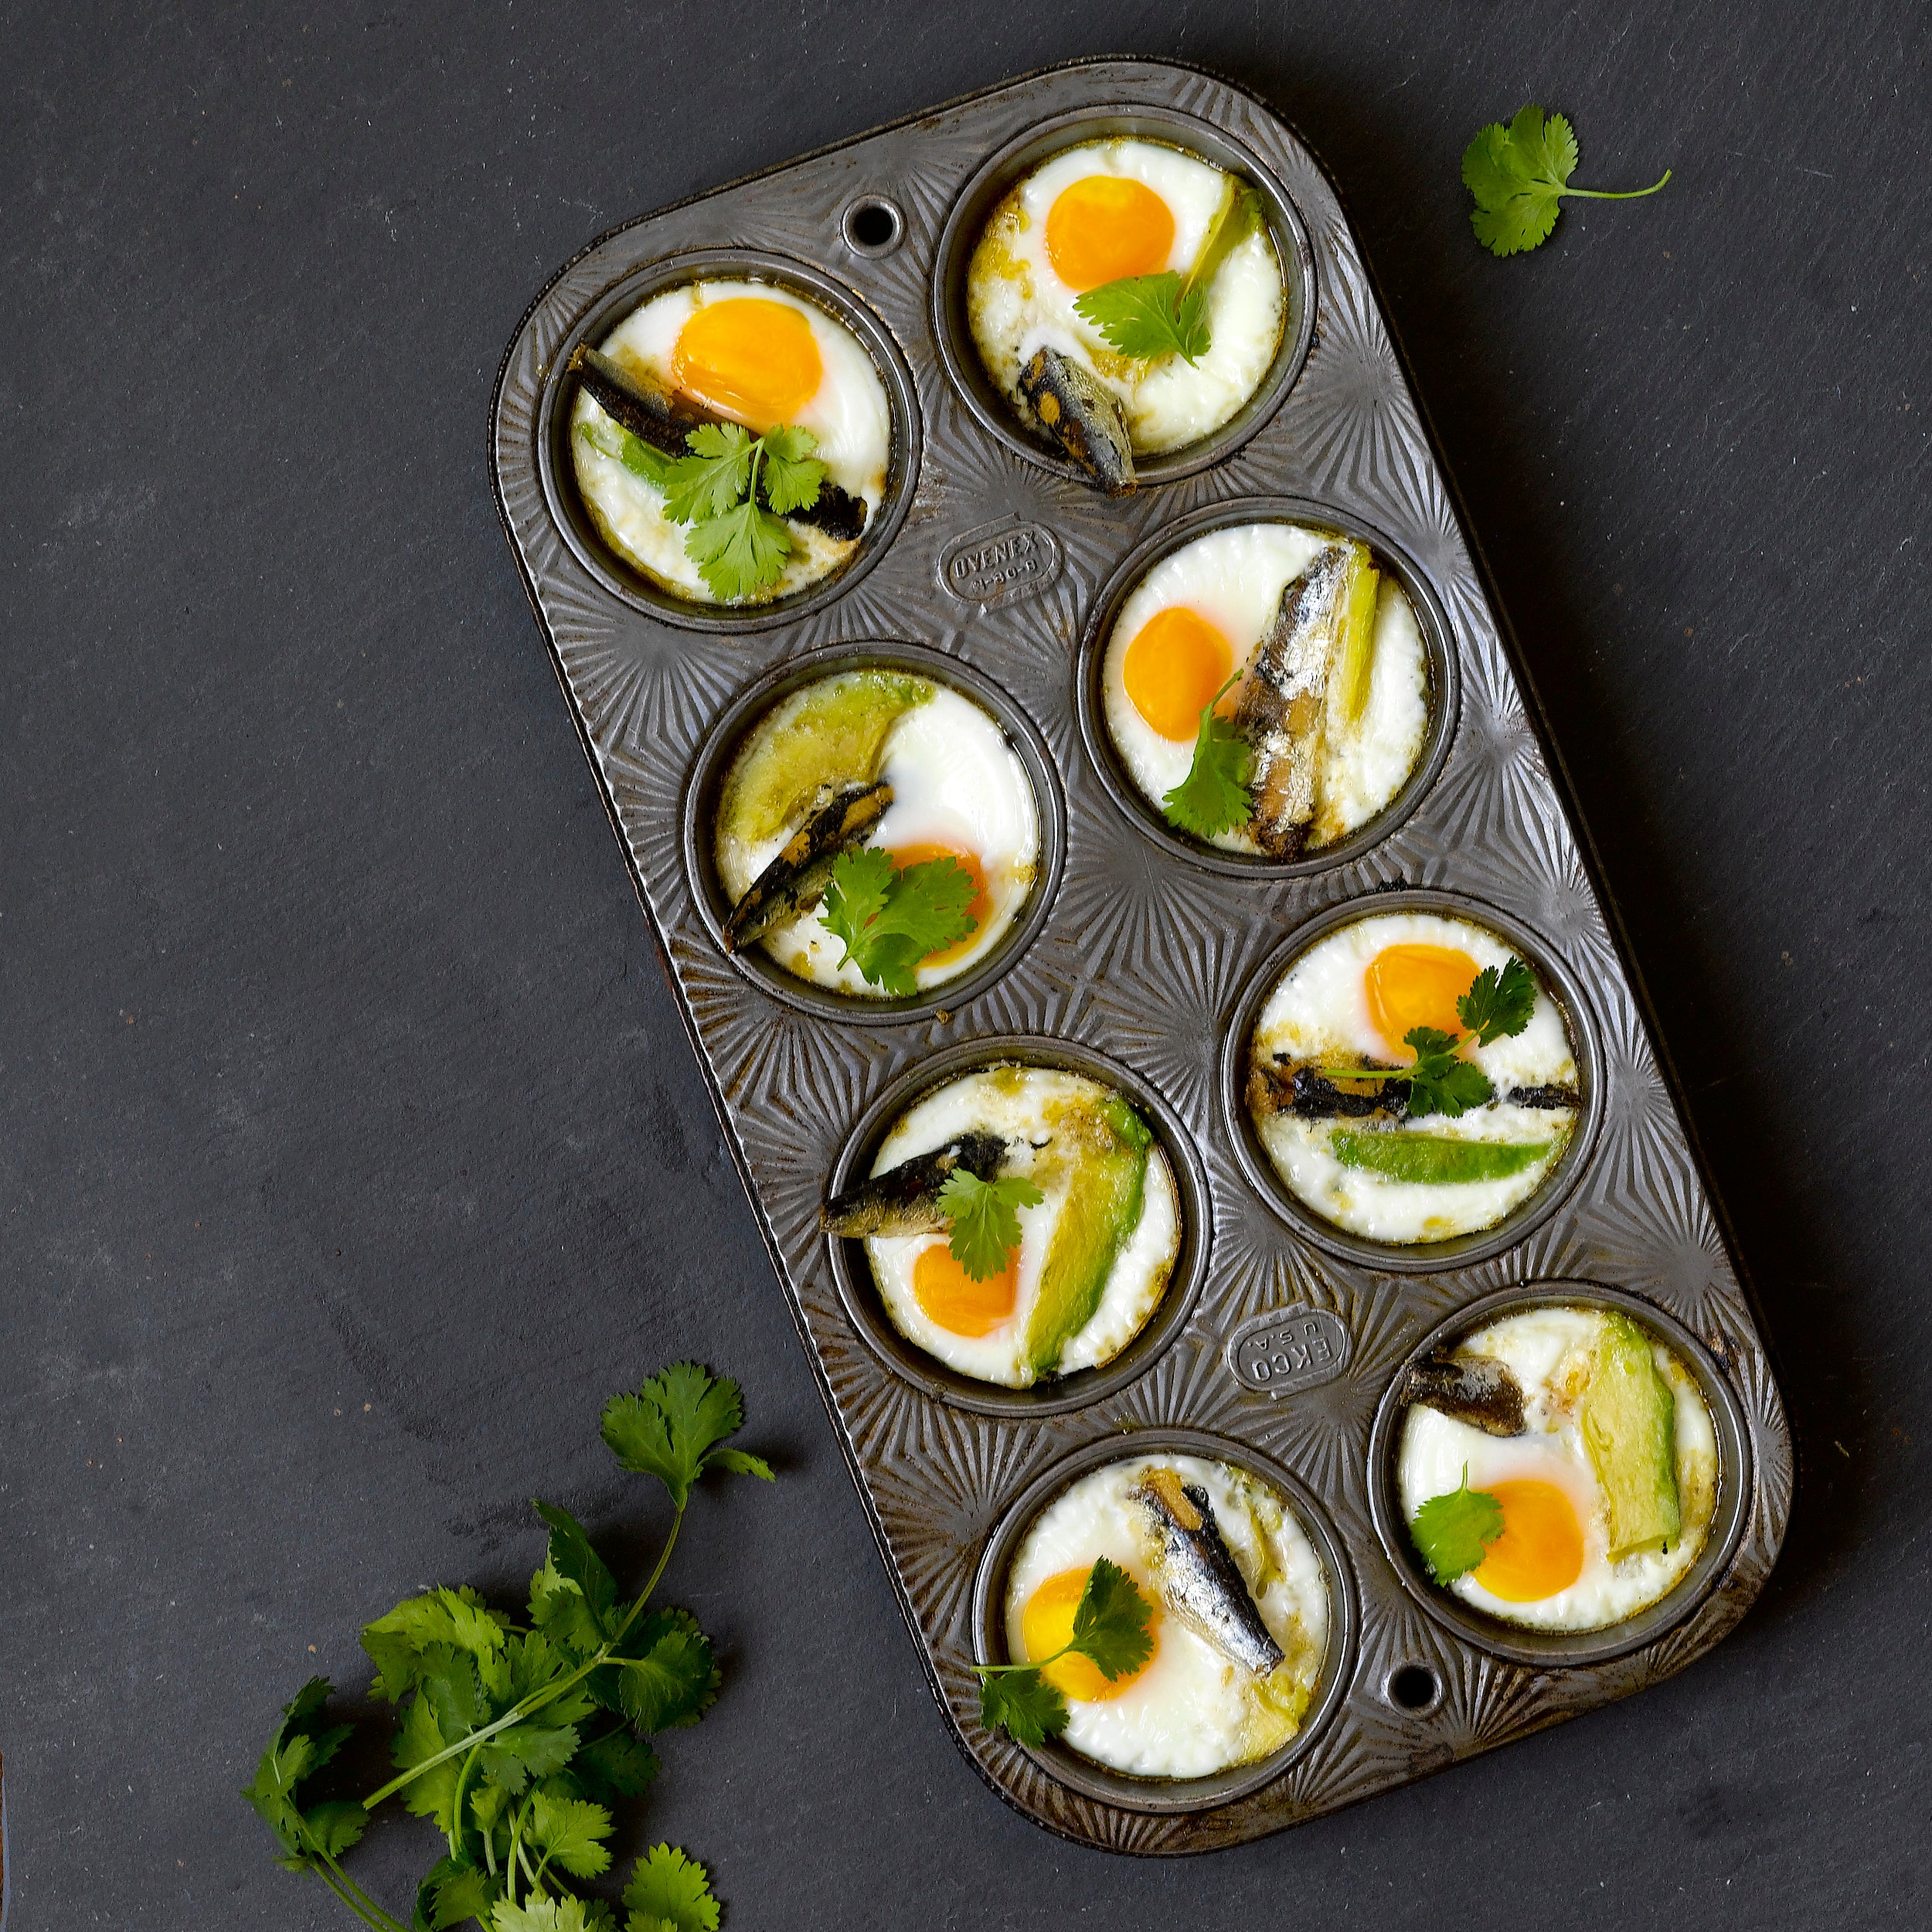 Petite Sardine Baked Eggs - Ingredients:- 8 Eggs- 1 Ripe Avocado- 1 Small Bunch of Fresh Parsley- 2 Tins of Cole's Petite Sardines- Pinch of Salt and Pepper for Each EggDirections:Crack one egg into each muffin tin cup. Add one or two slices of avocado to each cup (be sure to cover with egg white if exposed to avoid any browning of the avocado). Drop 1-2 Petite Sardines into each cup, sprinkle with salt and pepper, and top with fresh bits of parsley. Pop into the oven for 9-12 minutes at 375 degrees (depending on how well you like your eggs cooked). Let cool 5 minutes and enjoy!